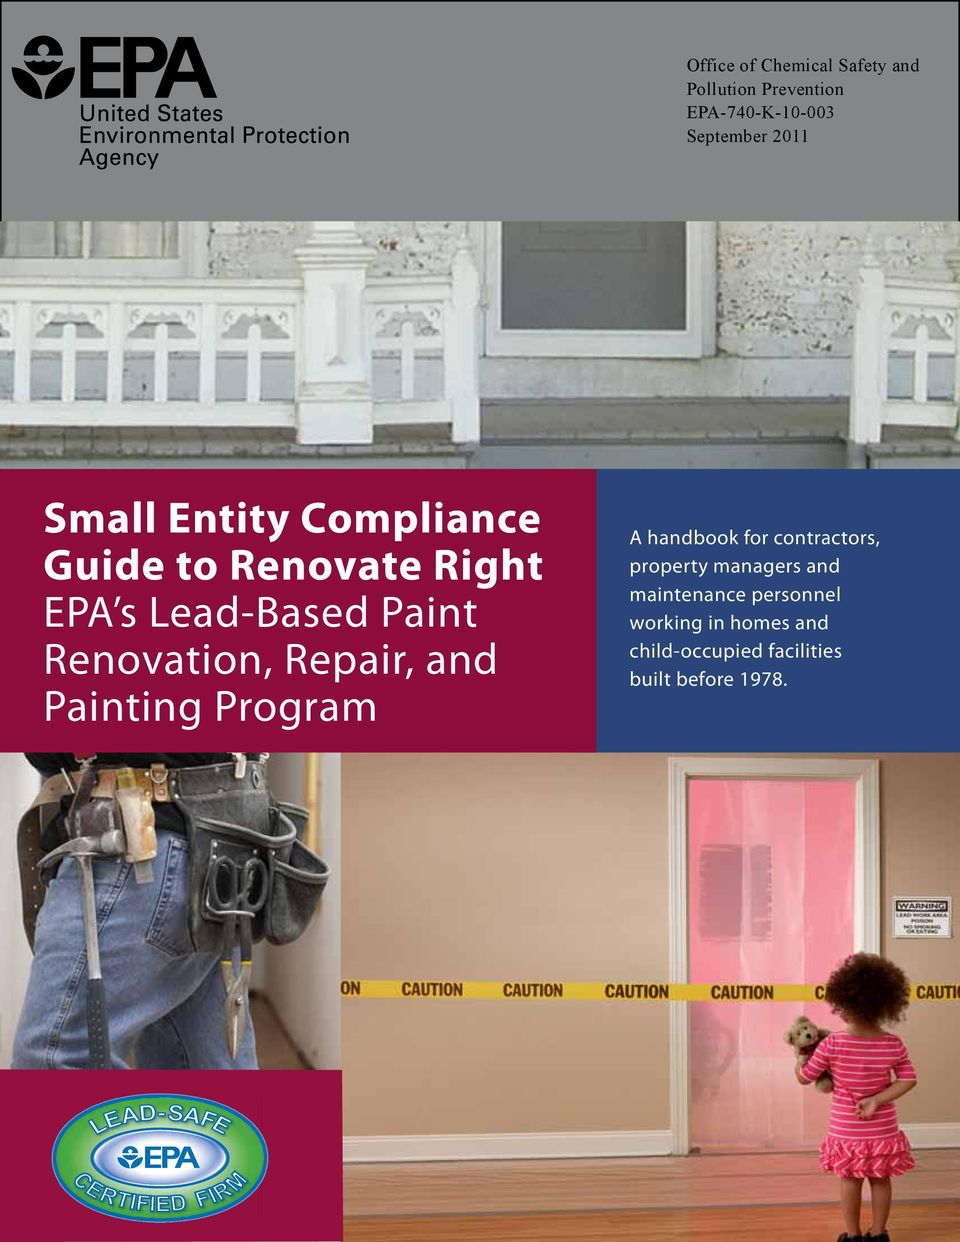 Painting Program A handbook for contractors, property managers and maintenance personnel